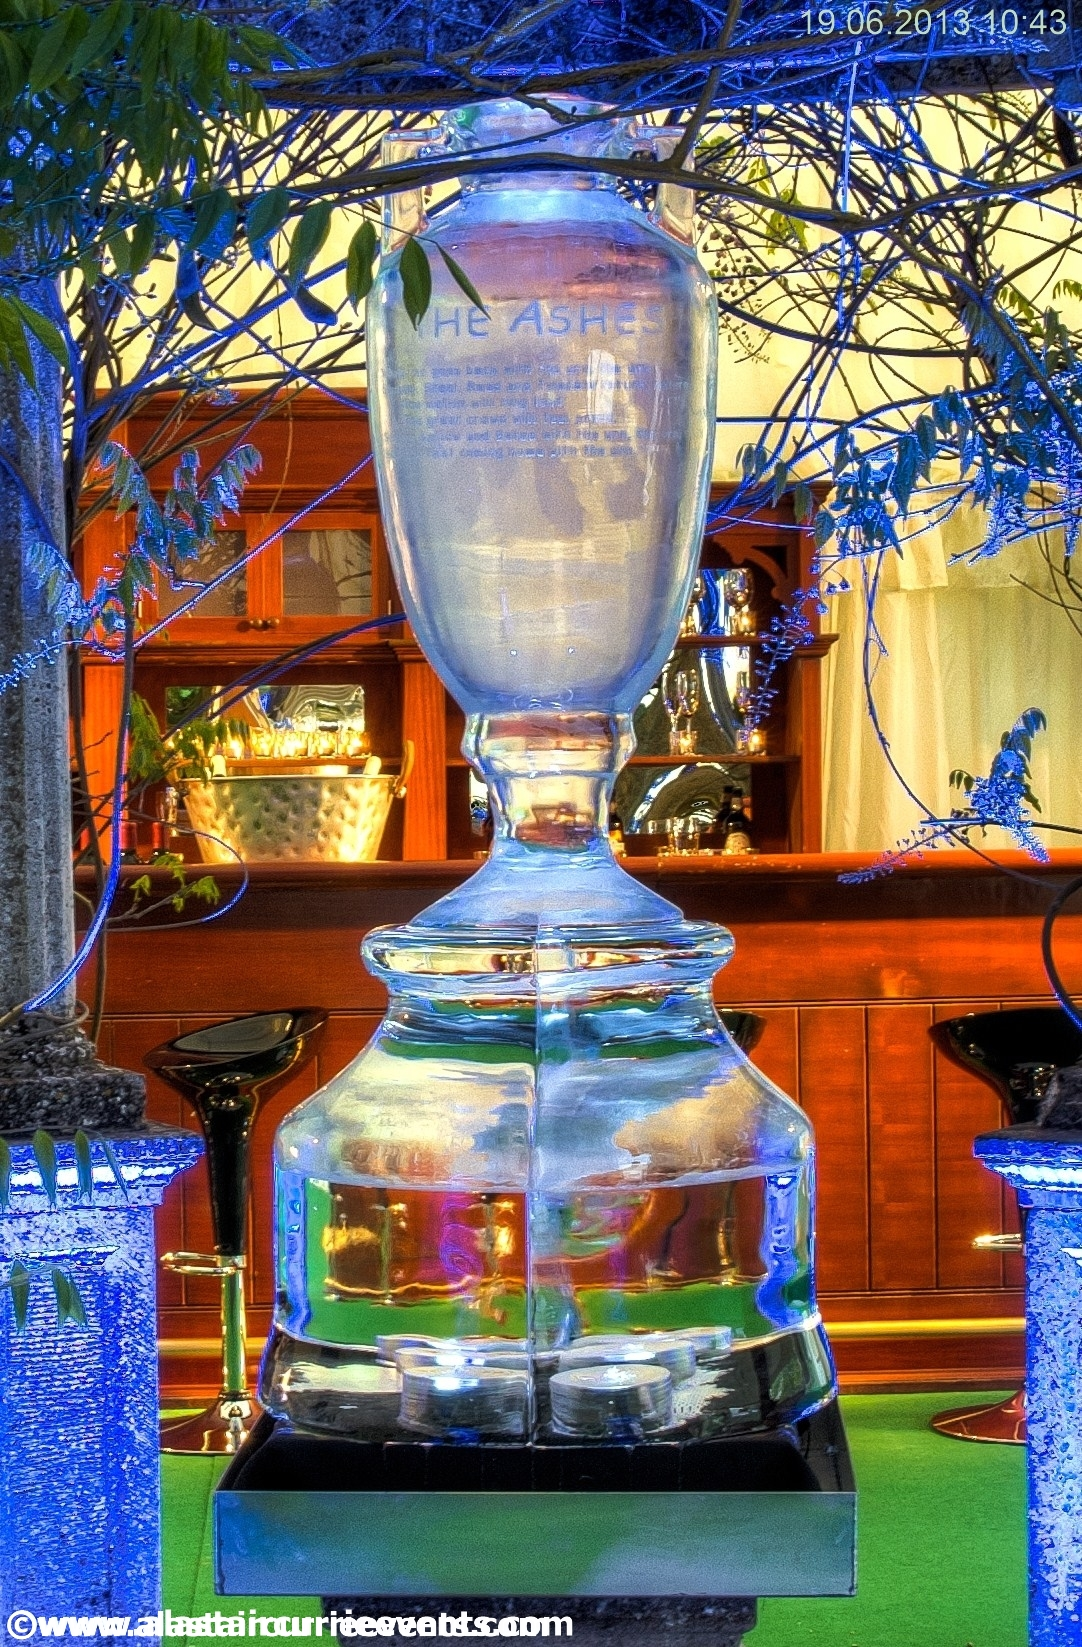 The Ashes Urn Ice Sculpture